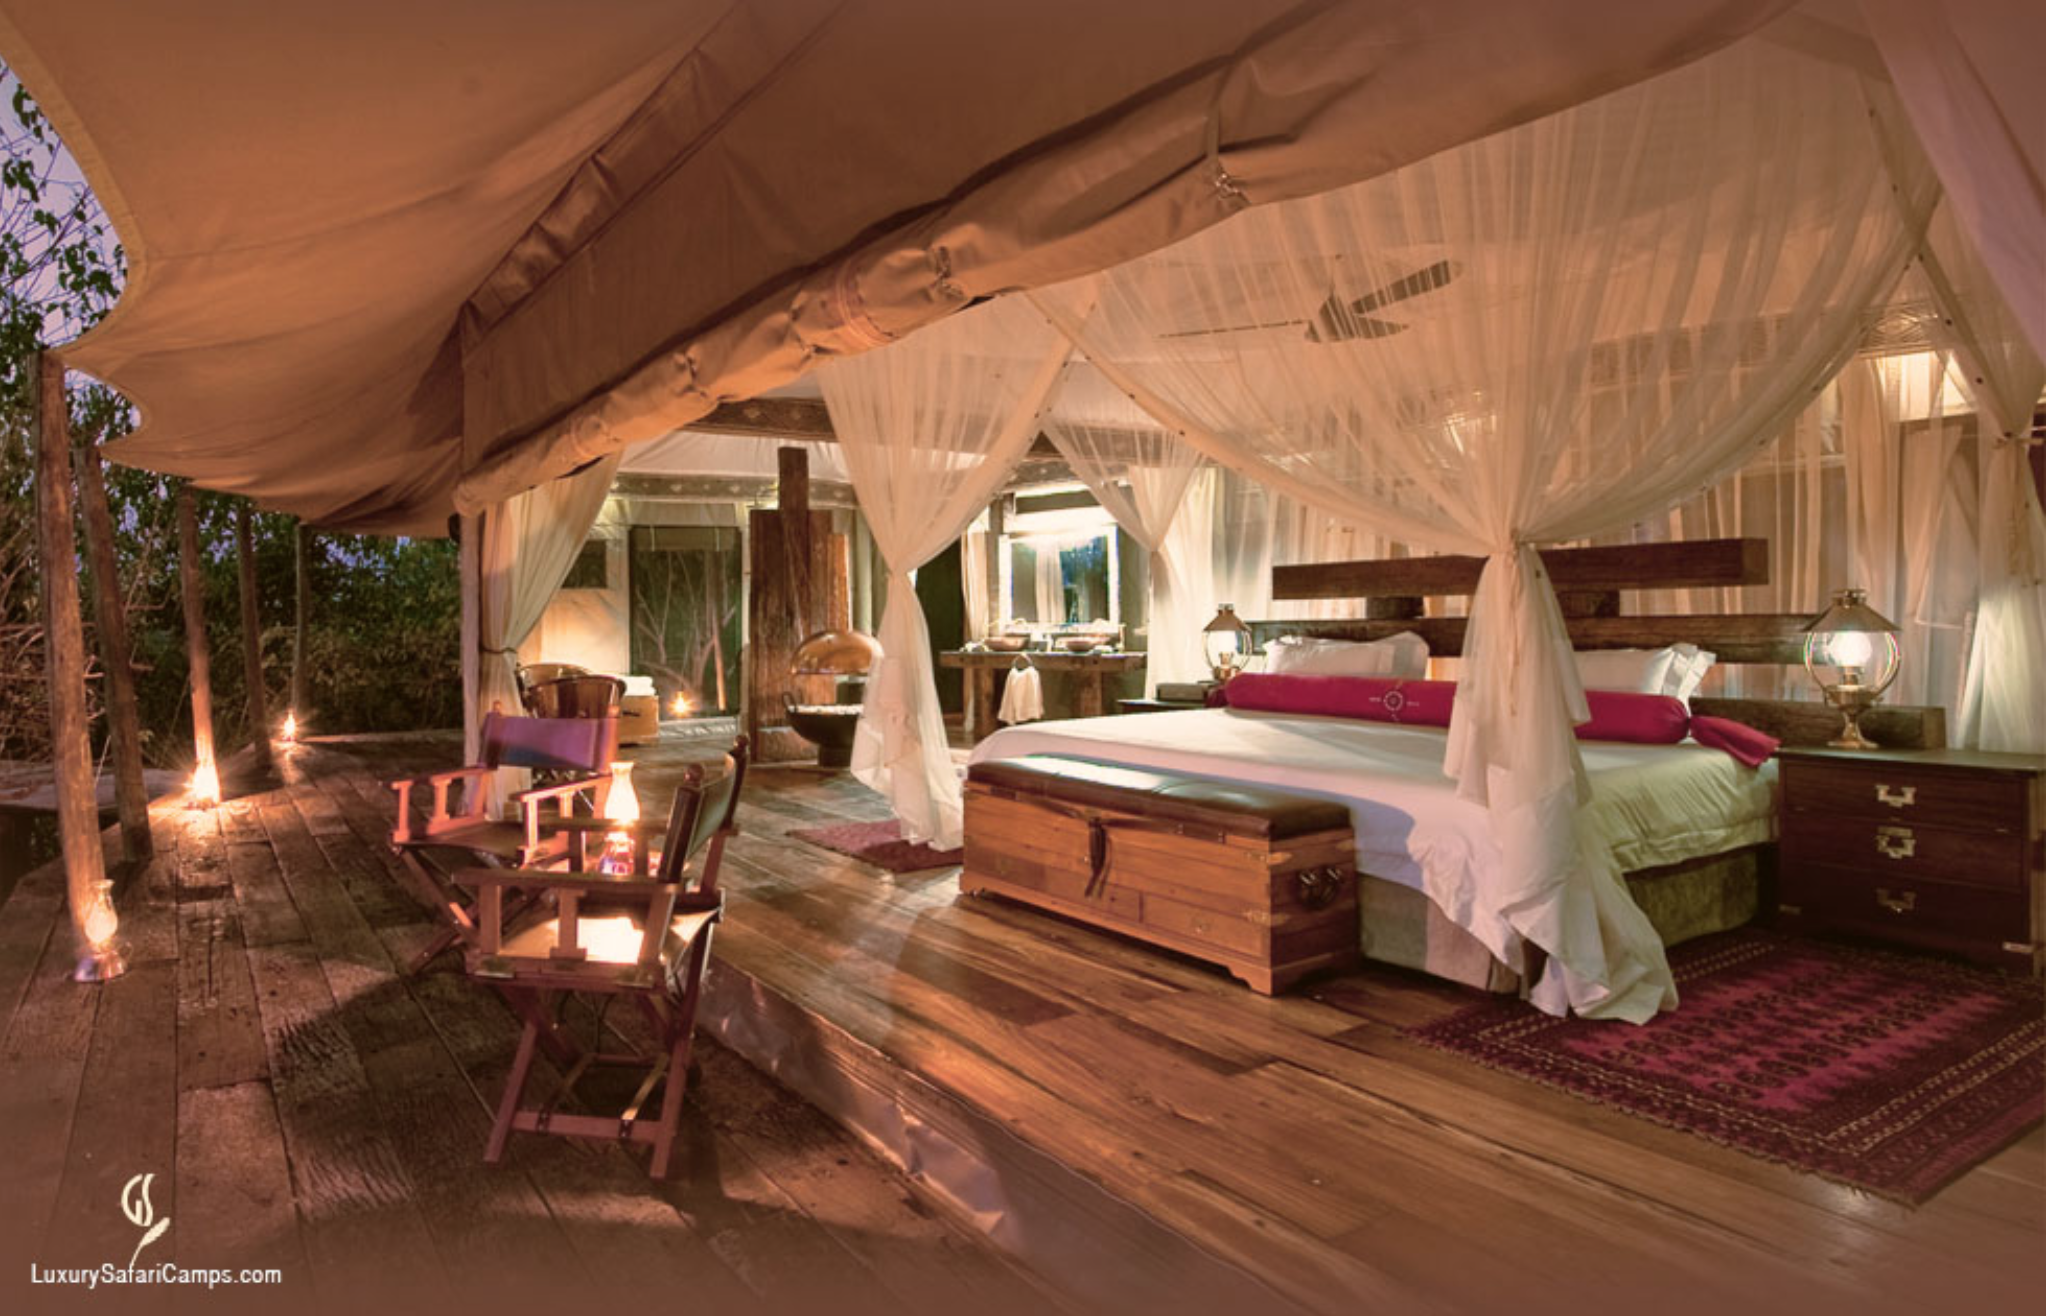 ZARAFA CAMP   Selinda Private Concession, Botswana  - With only four tented campaign-style suites, this intimate camp amongst big game is reminiscent of Hemingway's journeys to Africa. Stunning in decor and awe-inspiring in setting, it was developed by National Geographic film makers Dereck and Beverly Joubert.